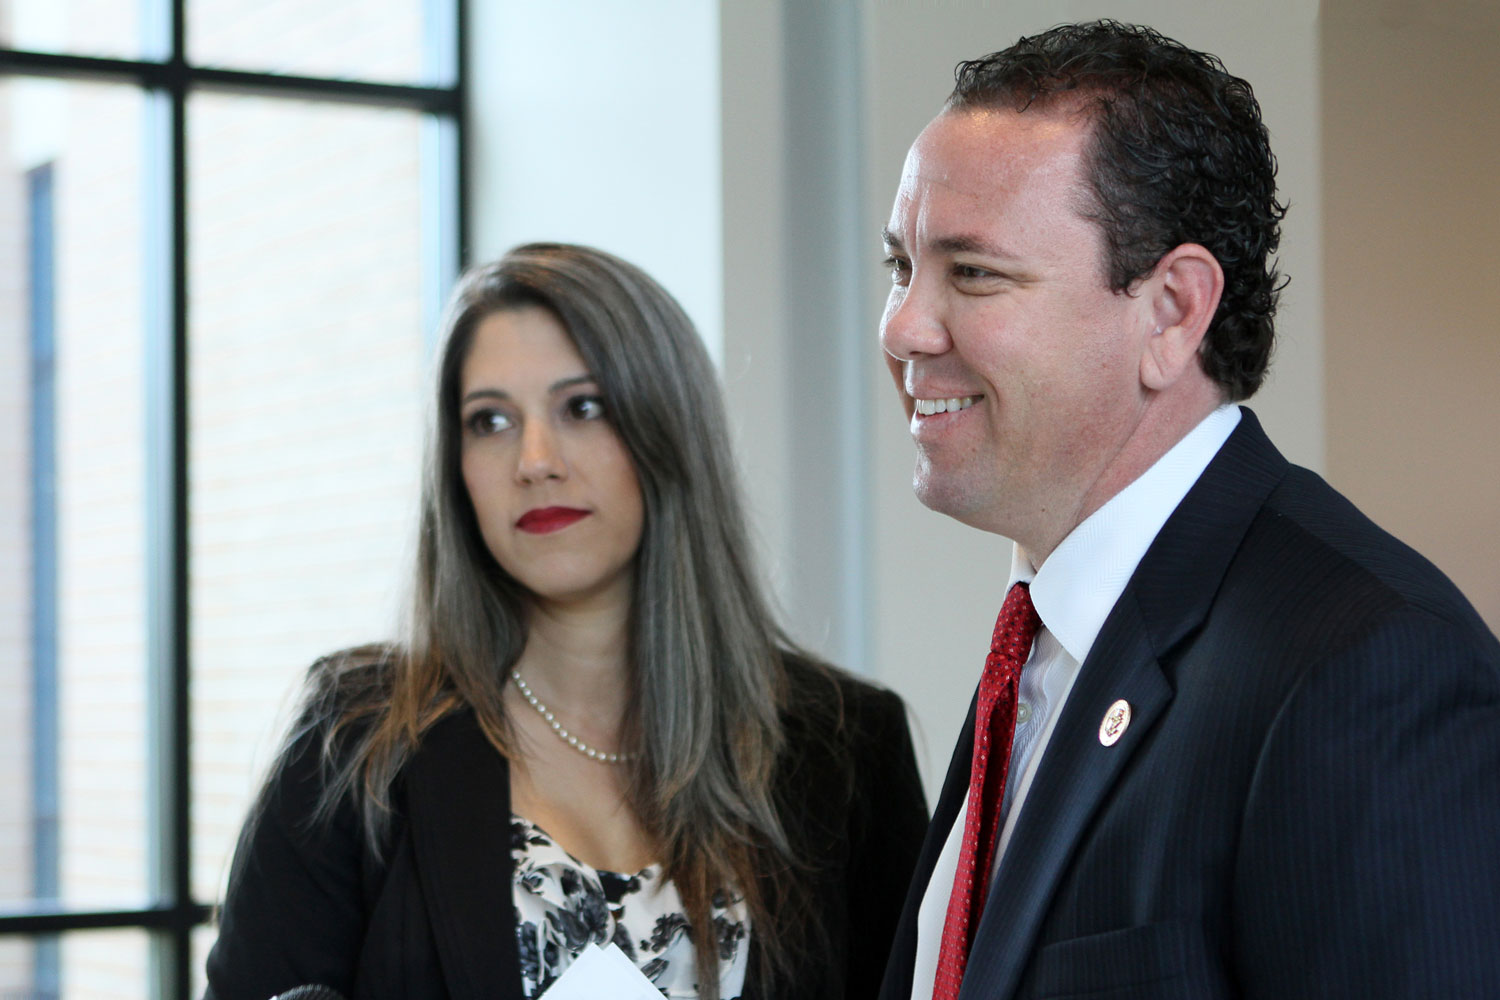 Republican Rep. Vance McAllister, right, and his wife Kelly, check in at Monroe Regional Airport on their way to Washington, in Monroe, La., Monday, April 28, 2014.